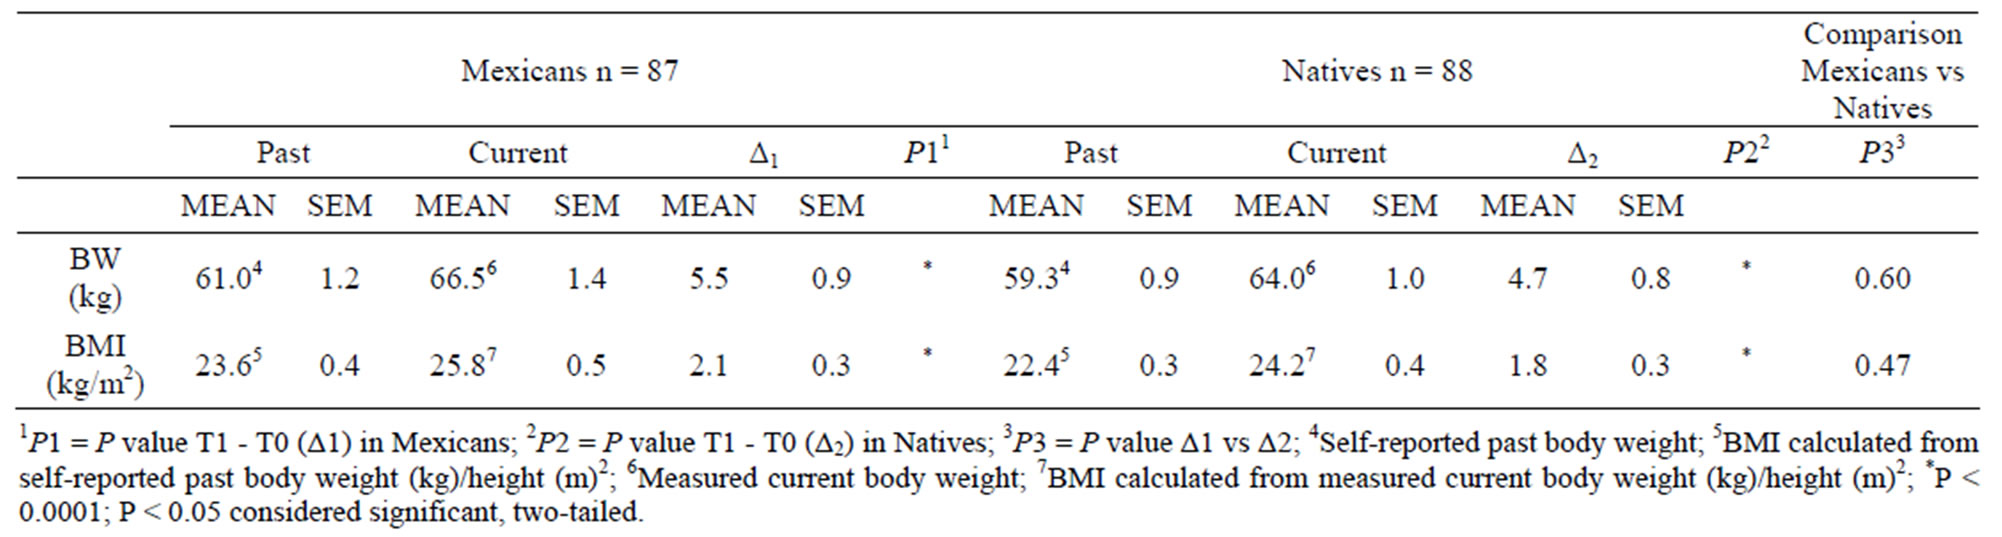 Current And Past Body Weight (bw) And Bmi And The Differences (currentpast)